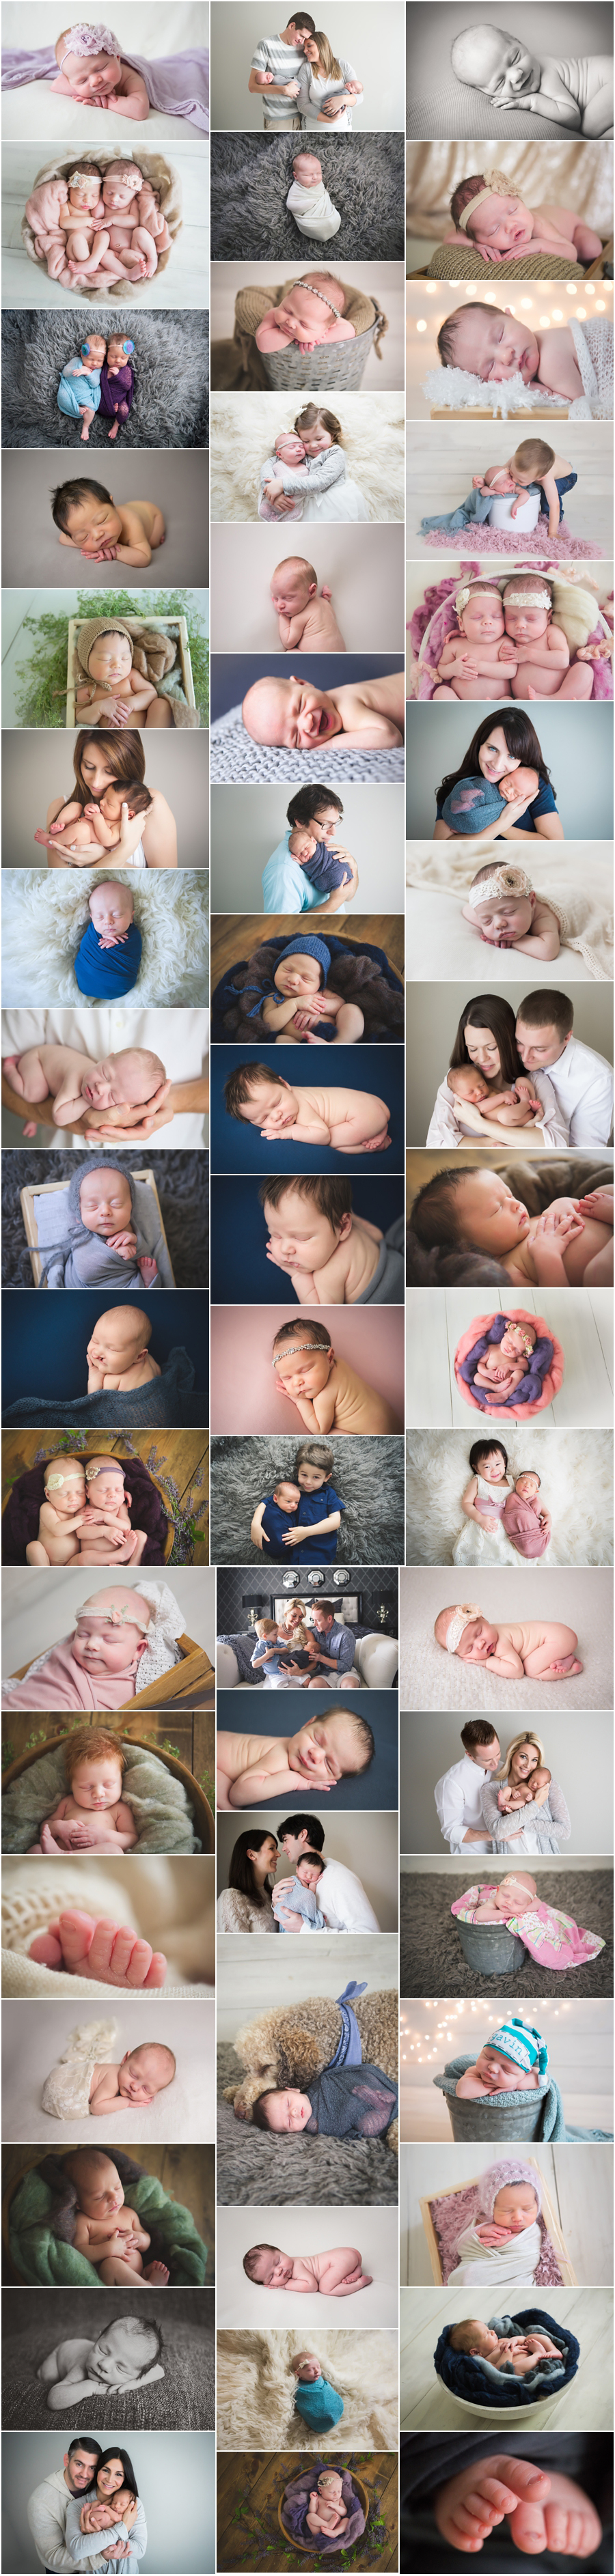 Indianapolis newborn pictures by KristeenMarie Photography